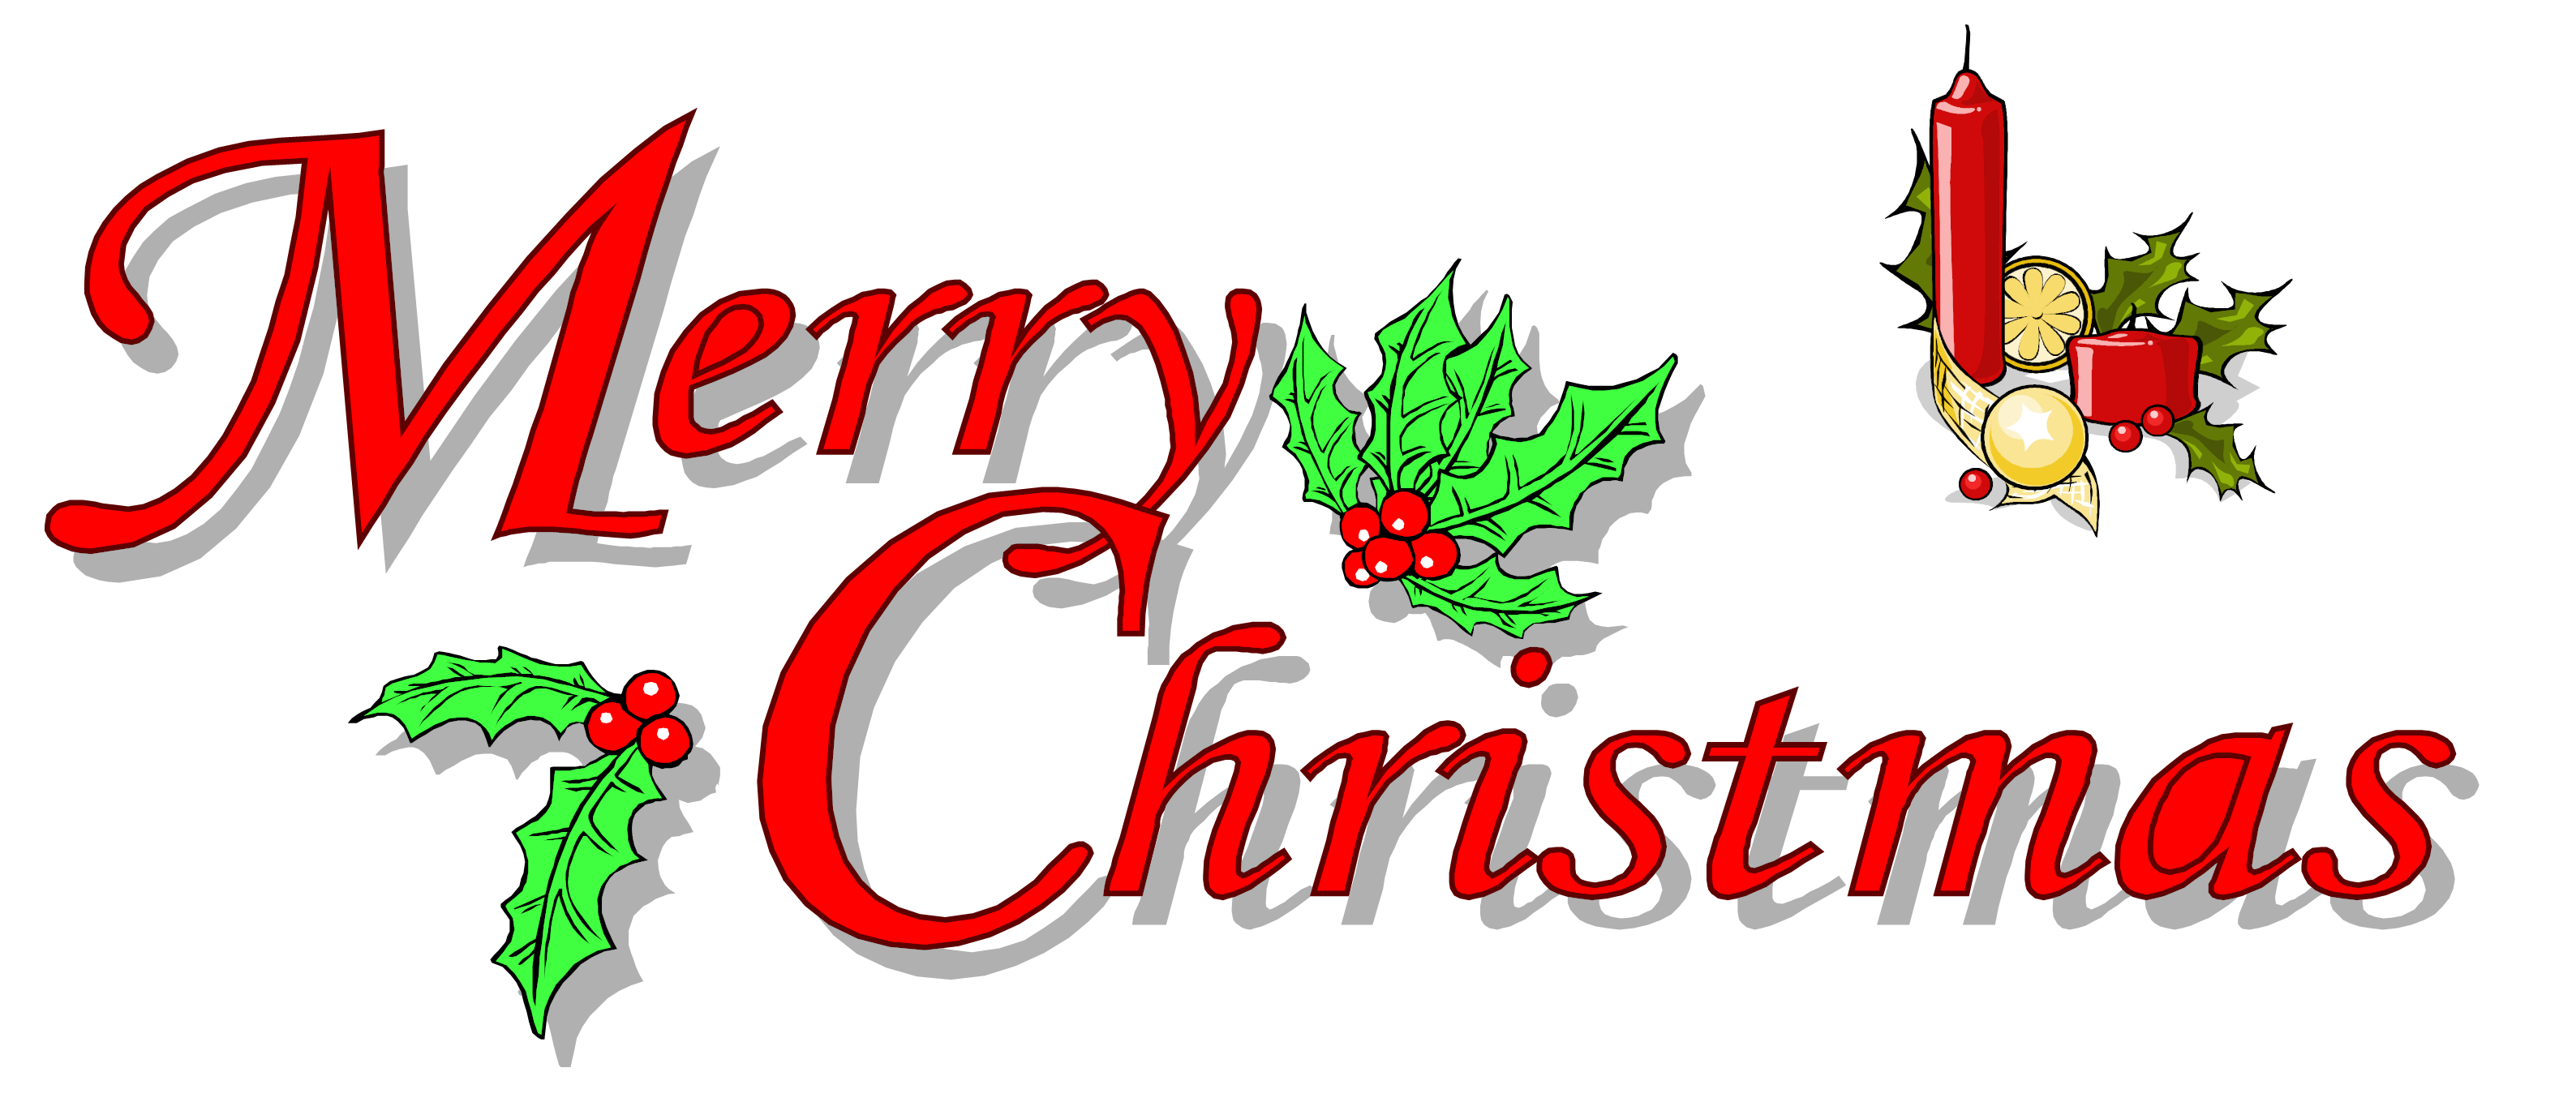 Merry christmas png images. Text transparent all